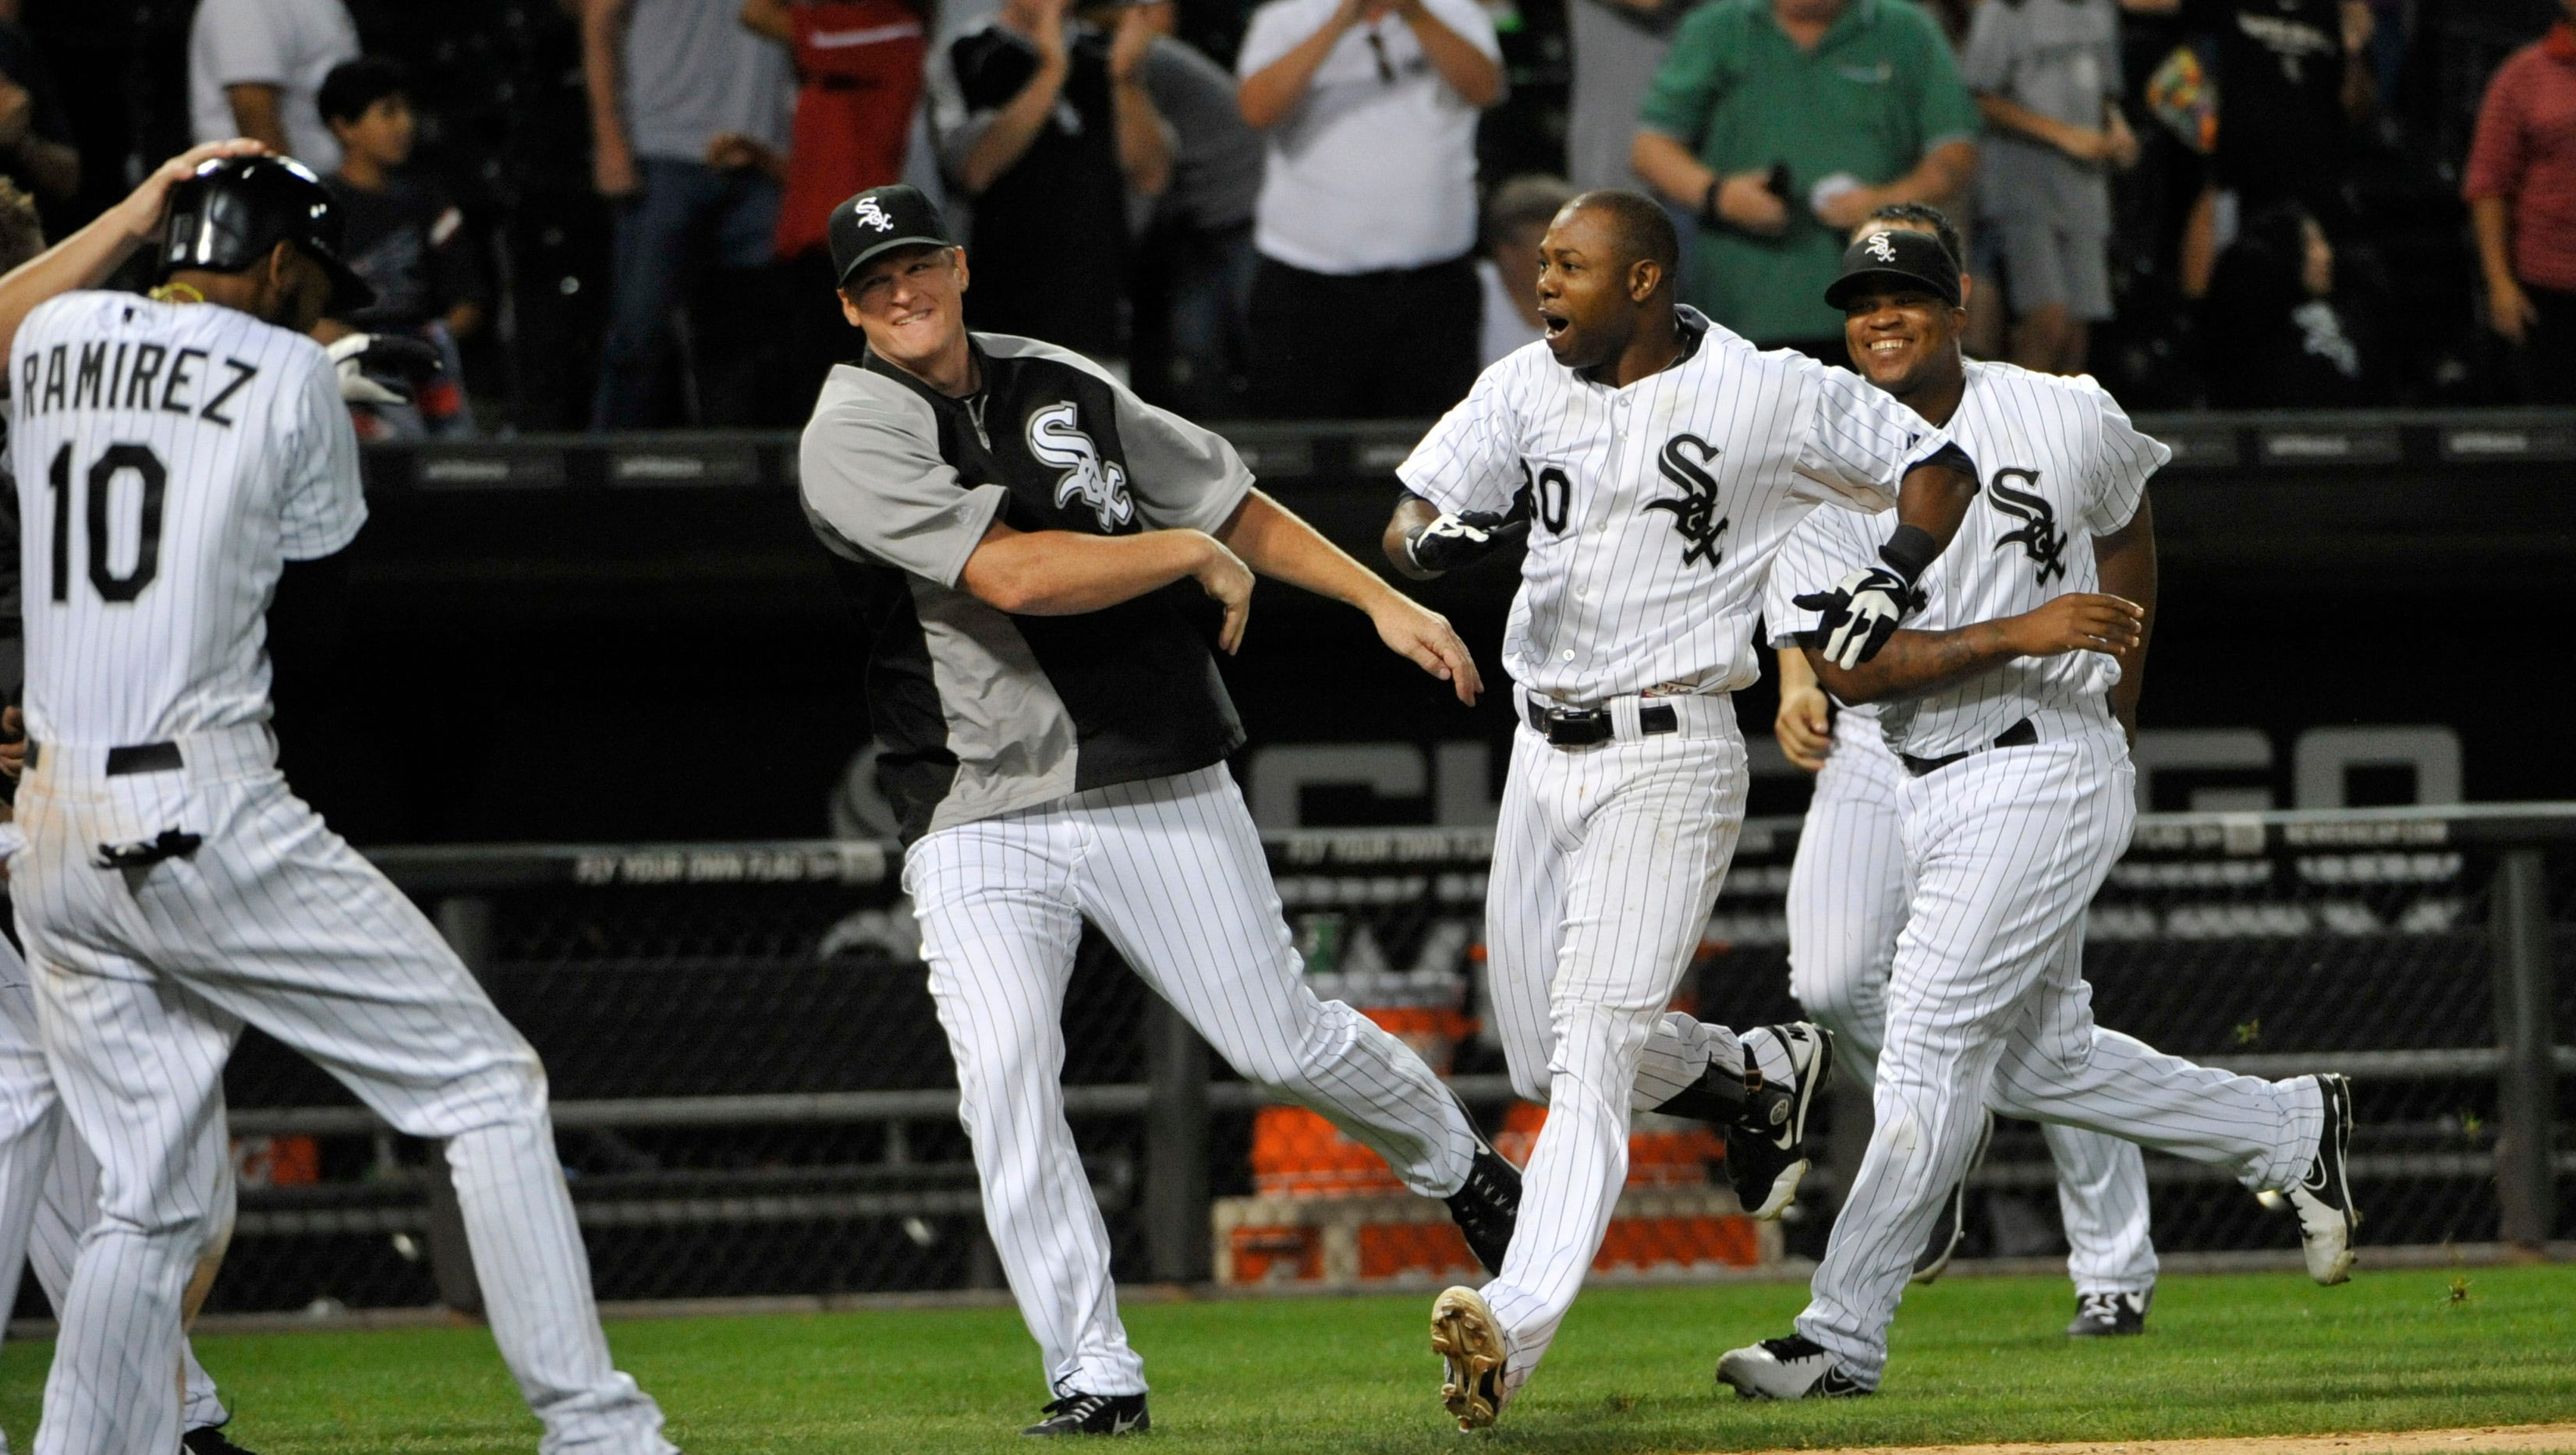 Aug. 7: Chicago White Sox center fielder Alejandro De Aza (30) hits a walk-off double to beat the New York Yankees at U.S. Cellular Field.